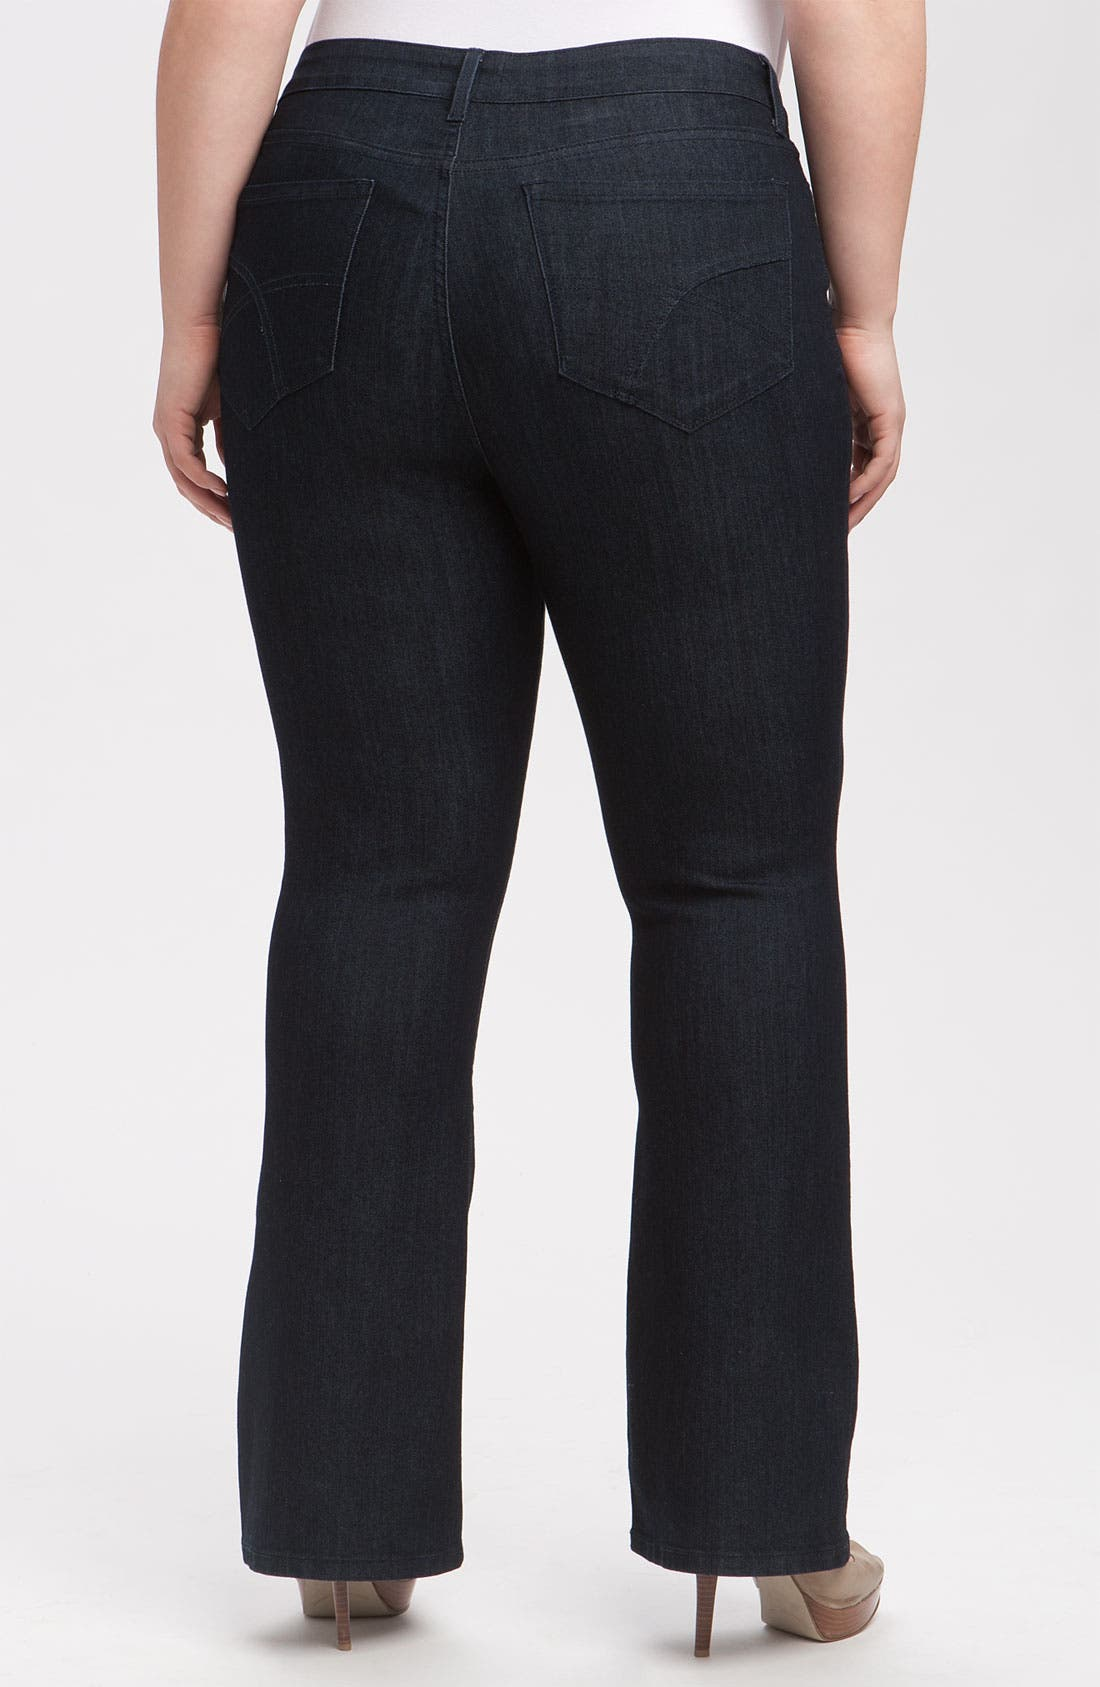 Alternate Image 2  - NYDJ 'Barbara' Stretch Bootcut Jeans (Dark Enzyme) (Plus Size)